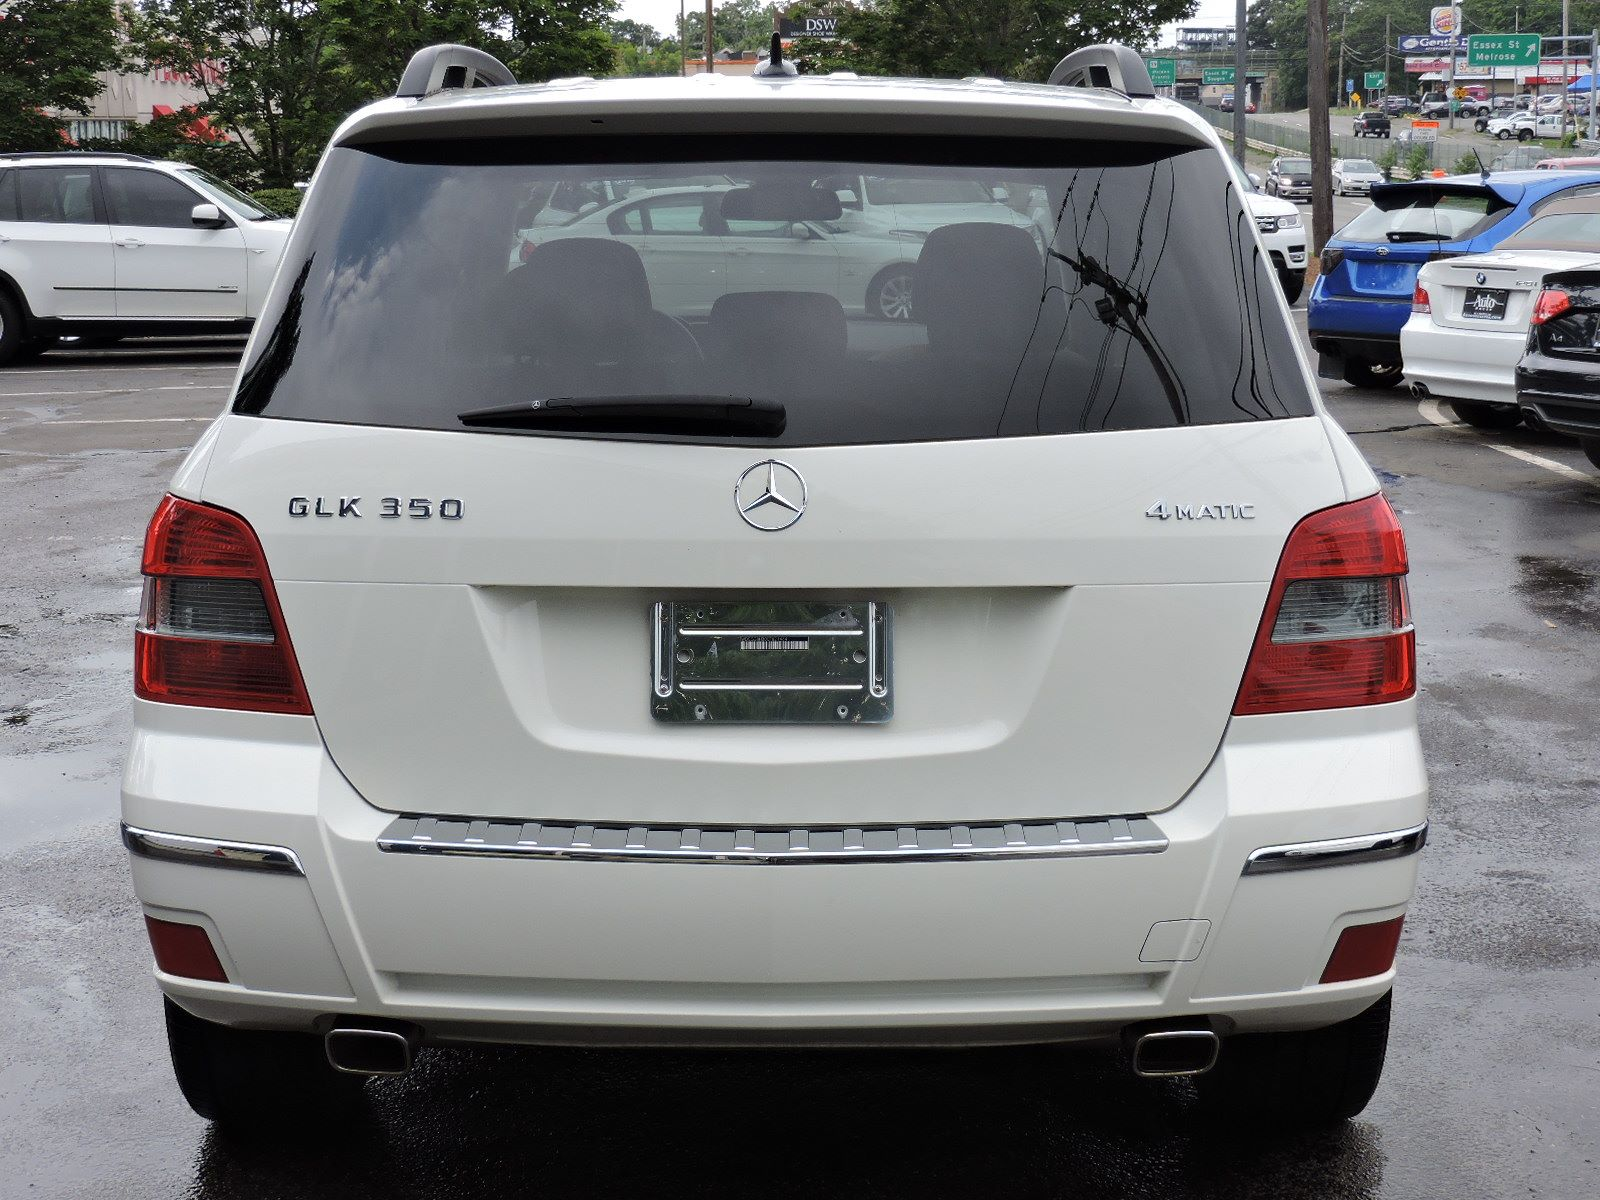 Used 2012 mercedes benz glk 350 at auto house usa saugus for 2012 mercedes benz glk350